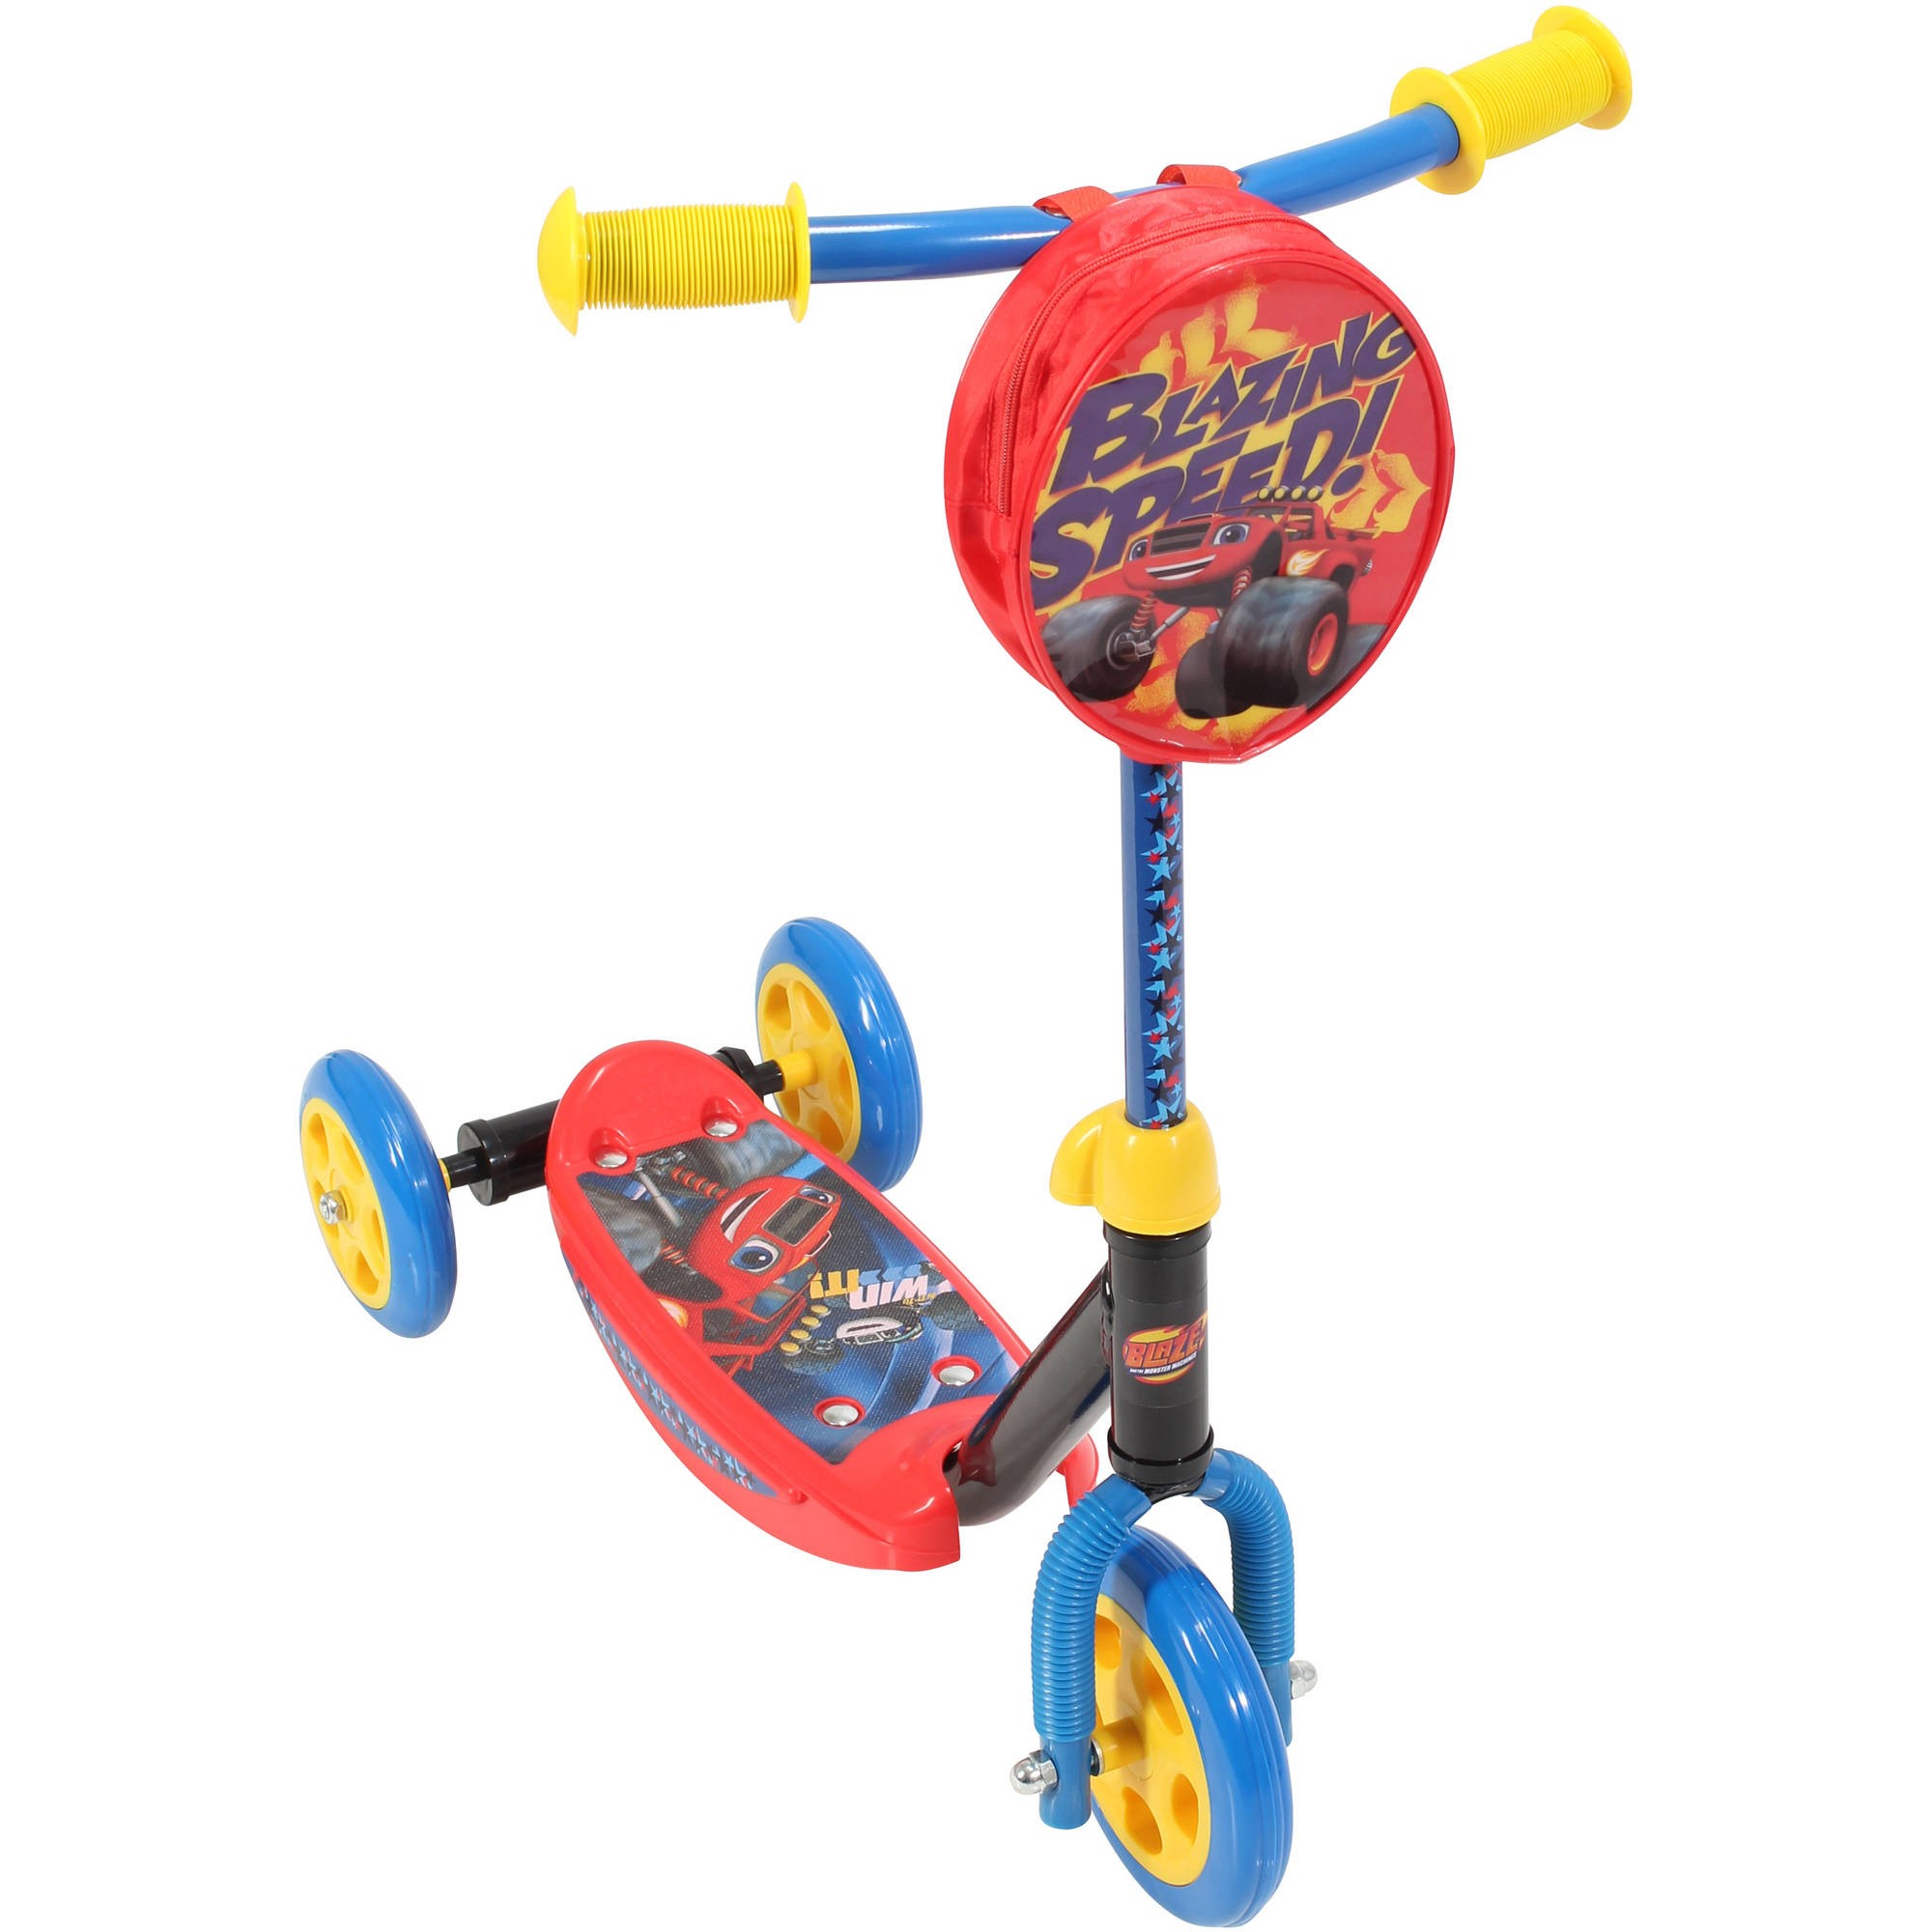 Playwheels Blaze and the Monster Machines 3-Wheel Scooter by Bravo Sports